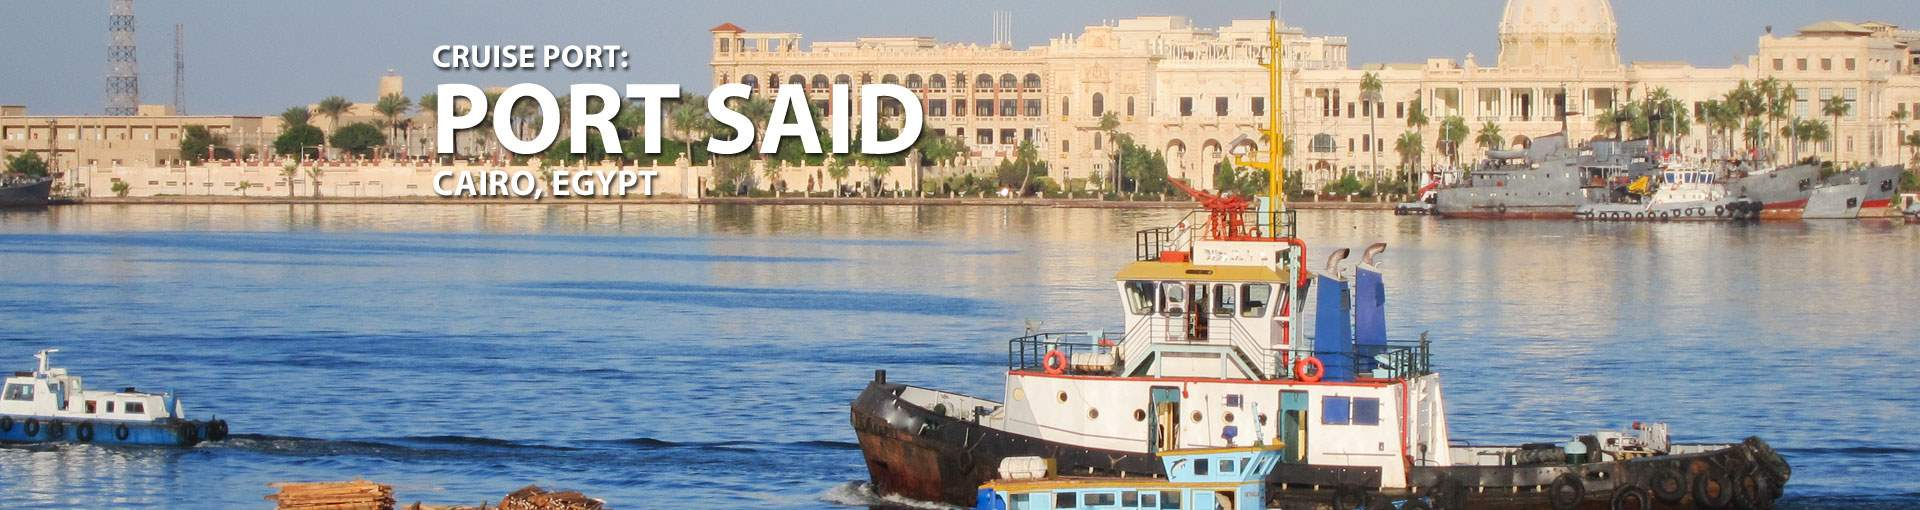 Cruises to Port Said (Cairo), Egypt